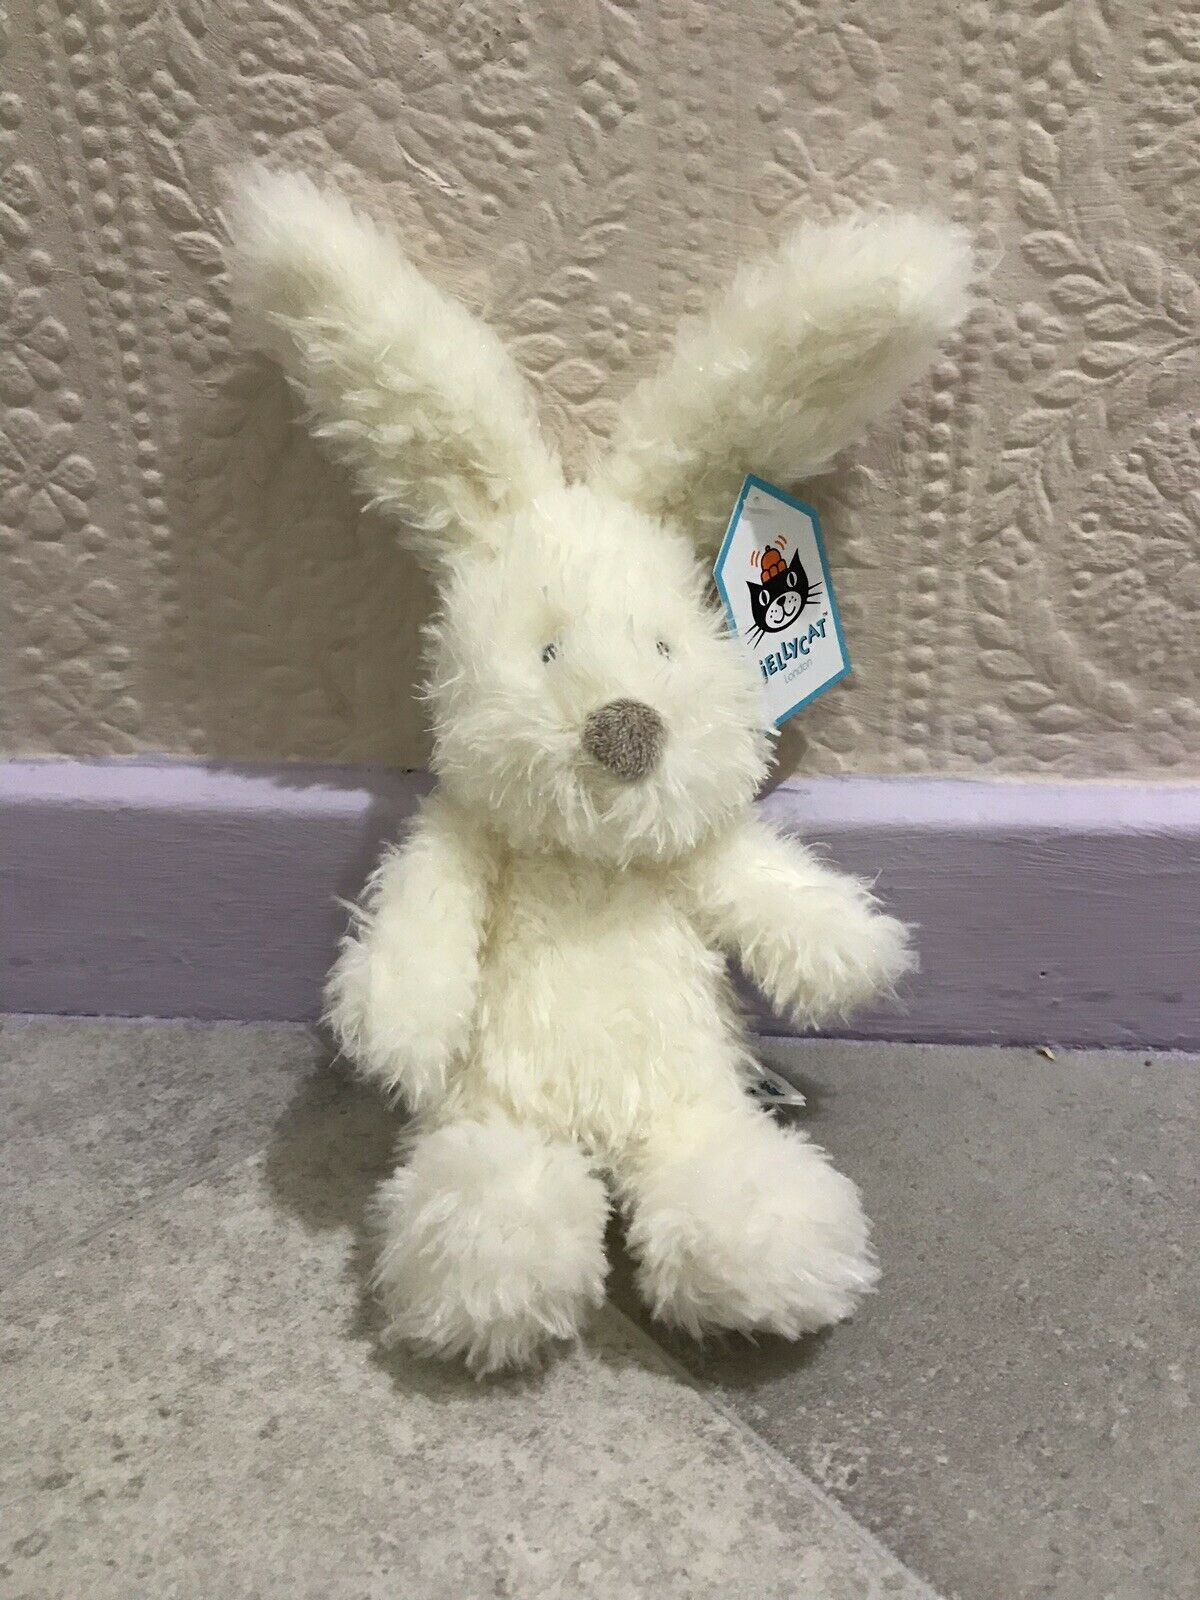 Jellycat Small Angora Bunny - Retired. With Tags